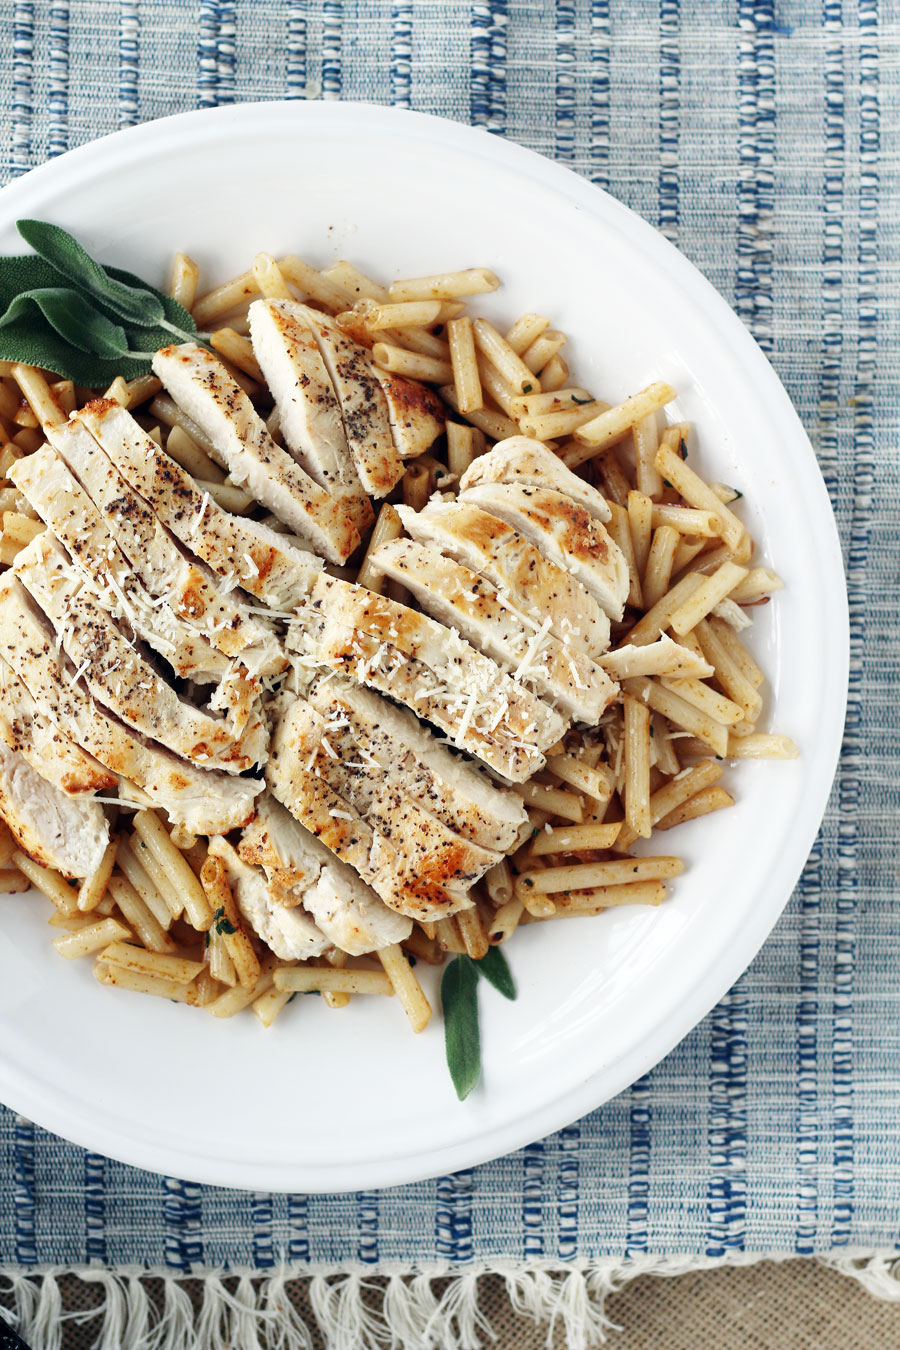 A platter of cooked and sliced chicken on a bed of penne pasta